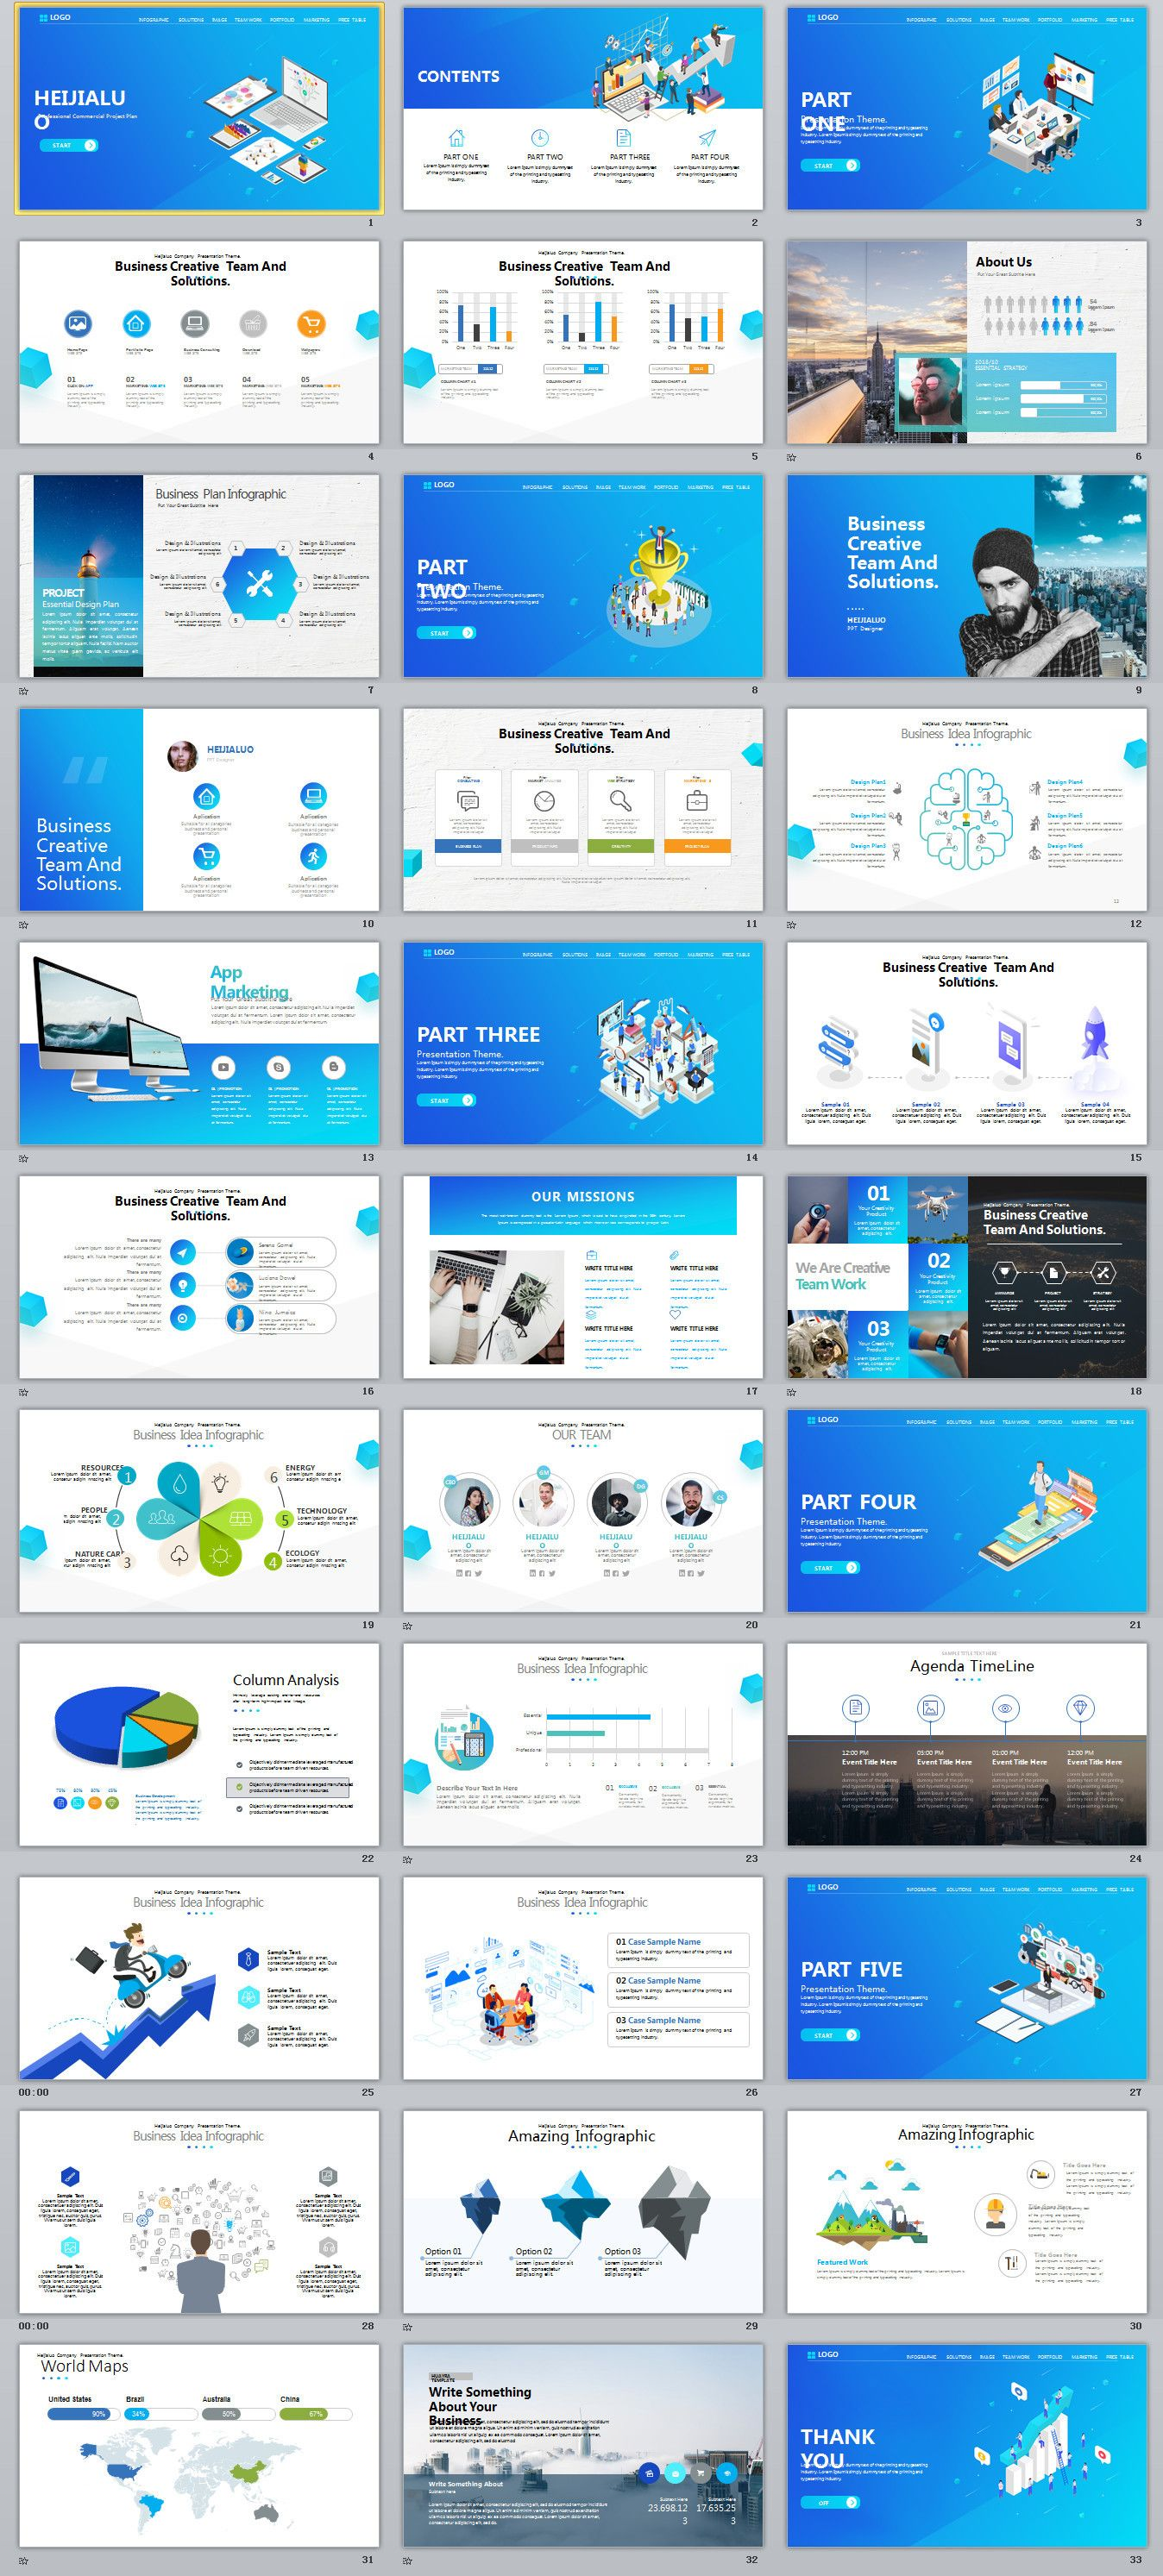 33 business website ui design powerpoint template powerpoint 33 business website ui design powerpoint template powerpoint templates presentation animation toneelgroepblik Image collections